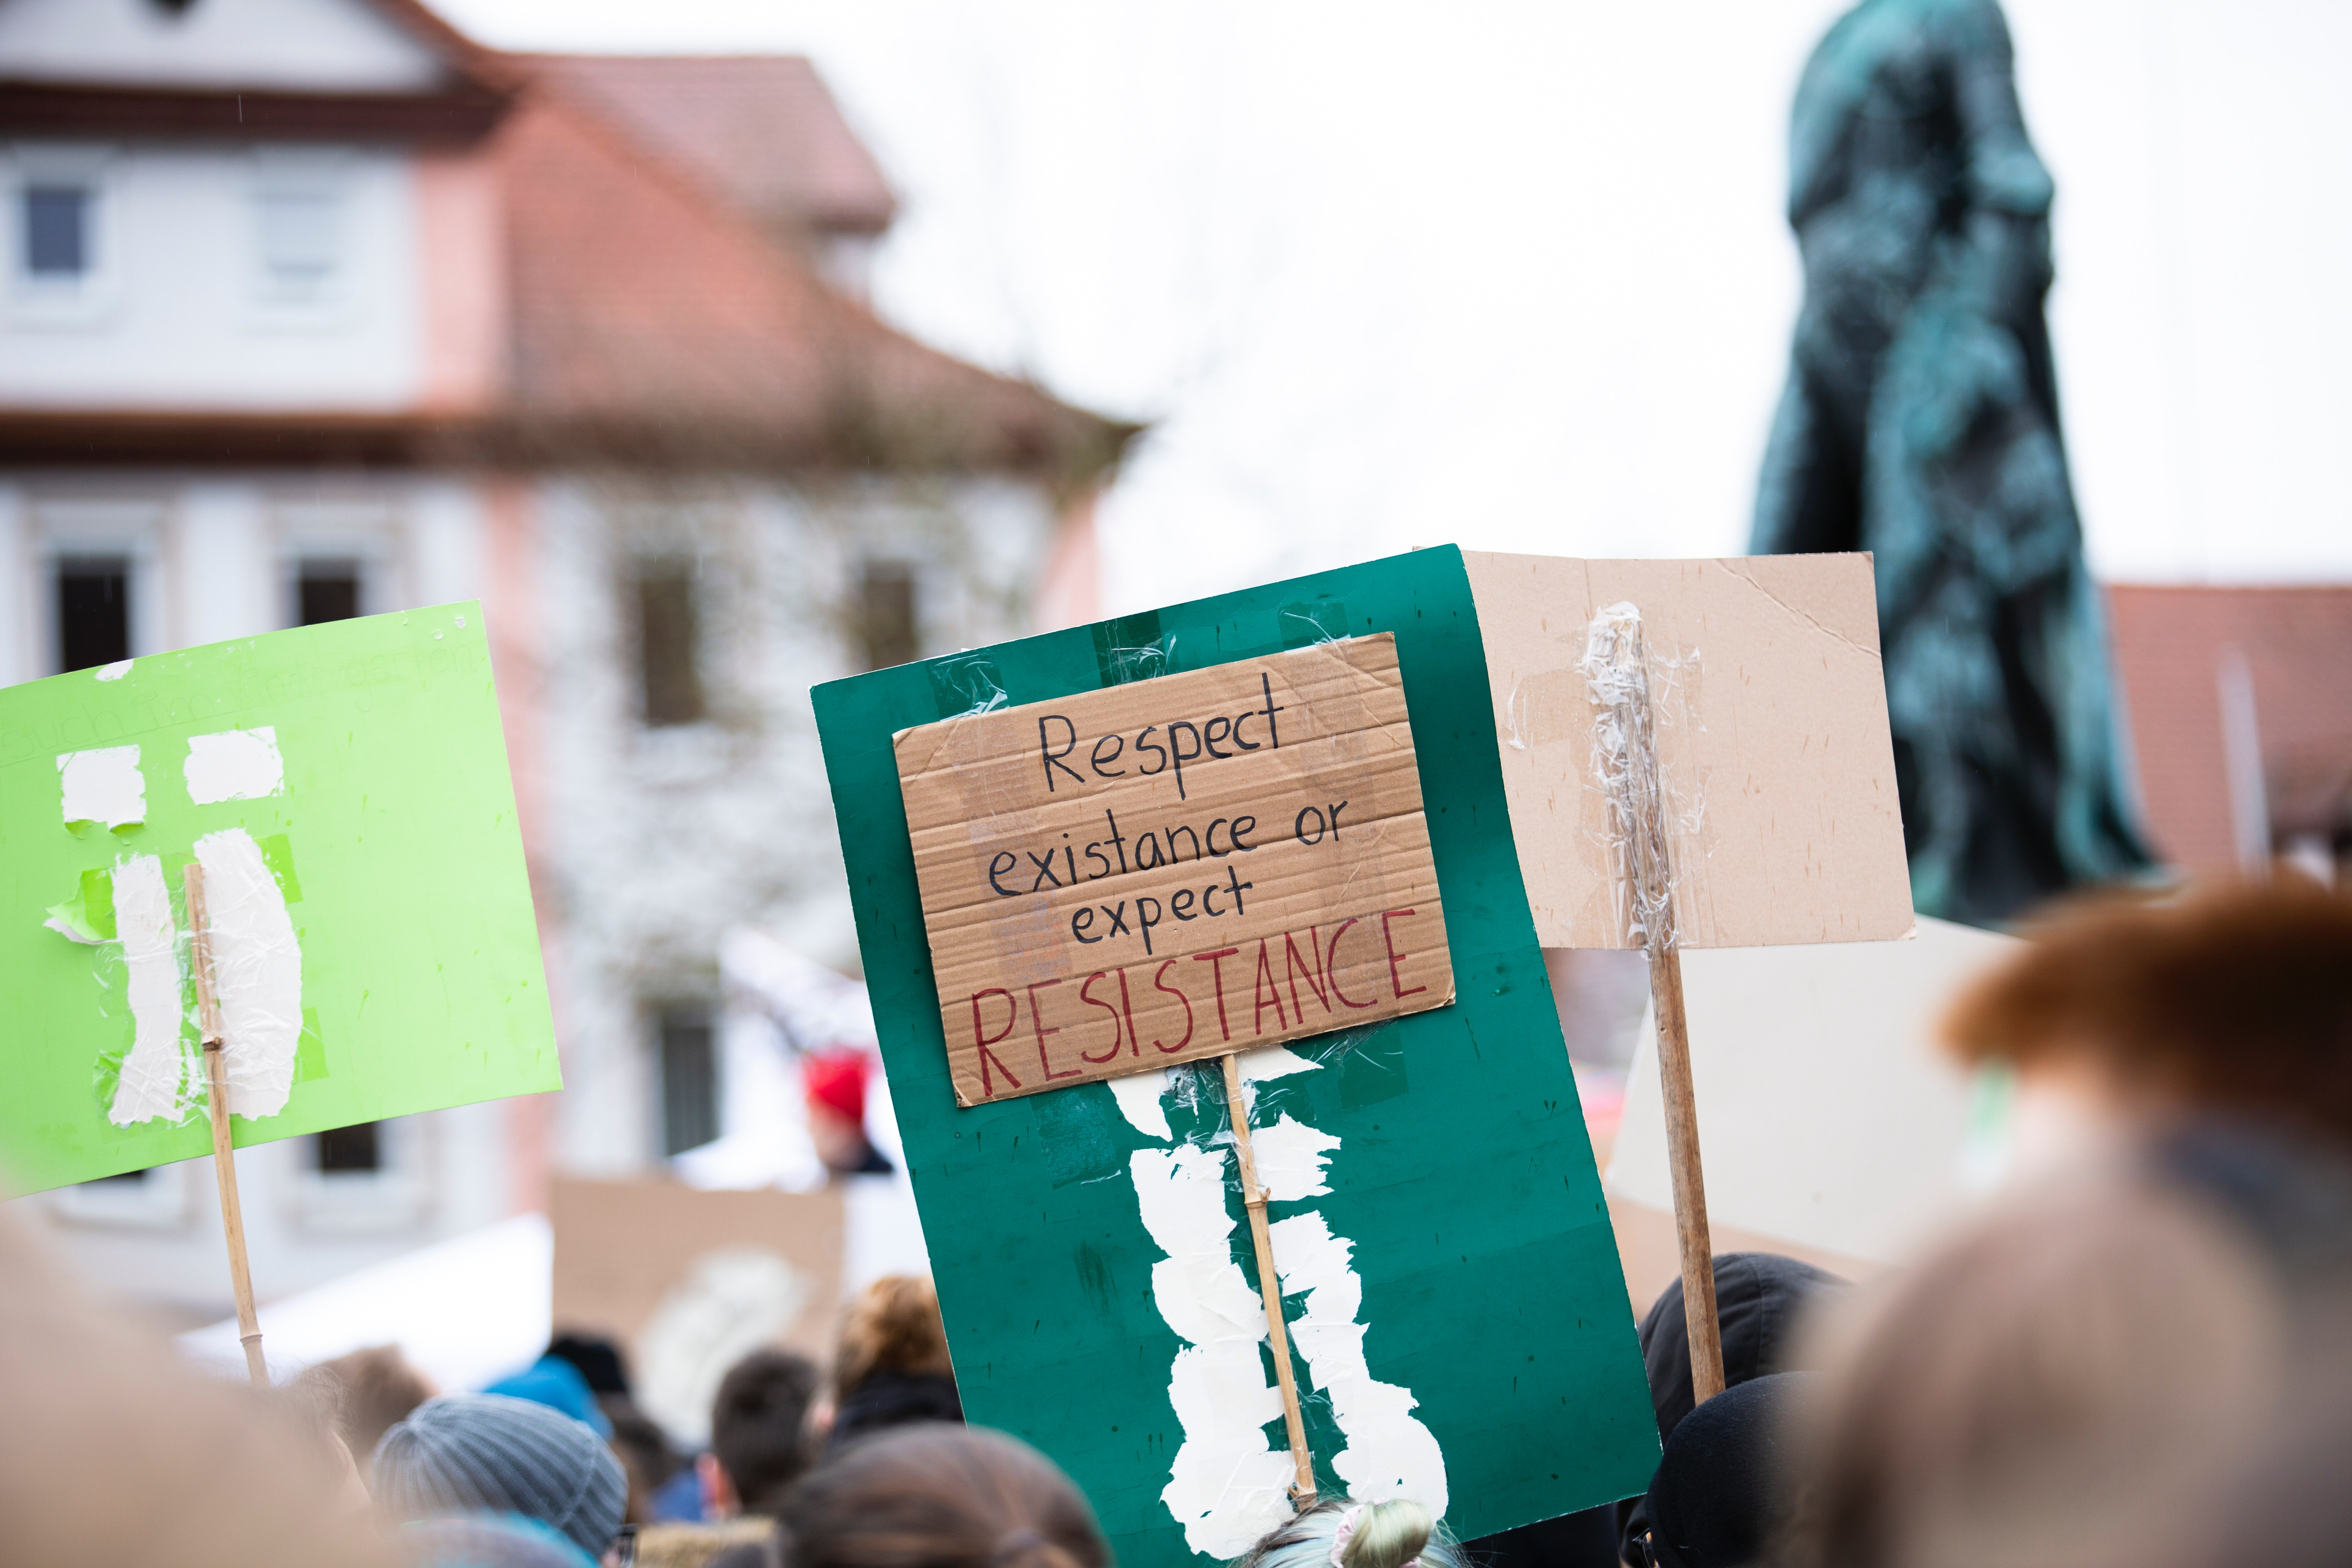 Global warming worldwide protest